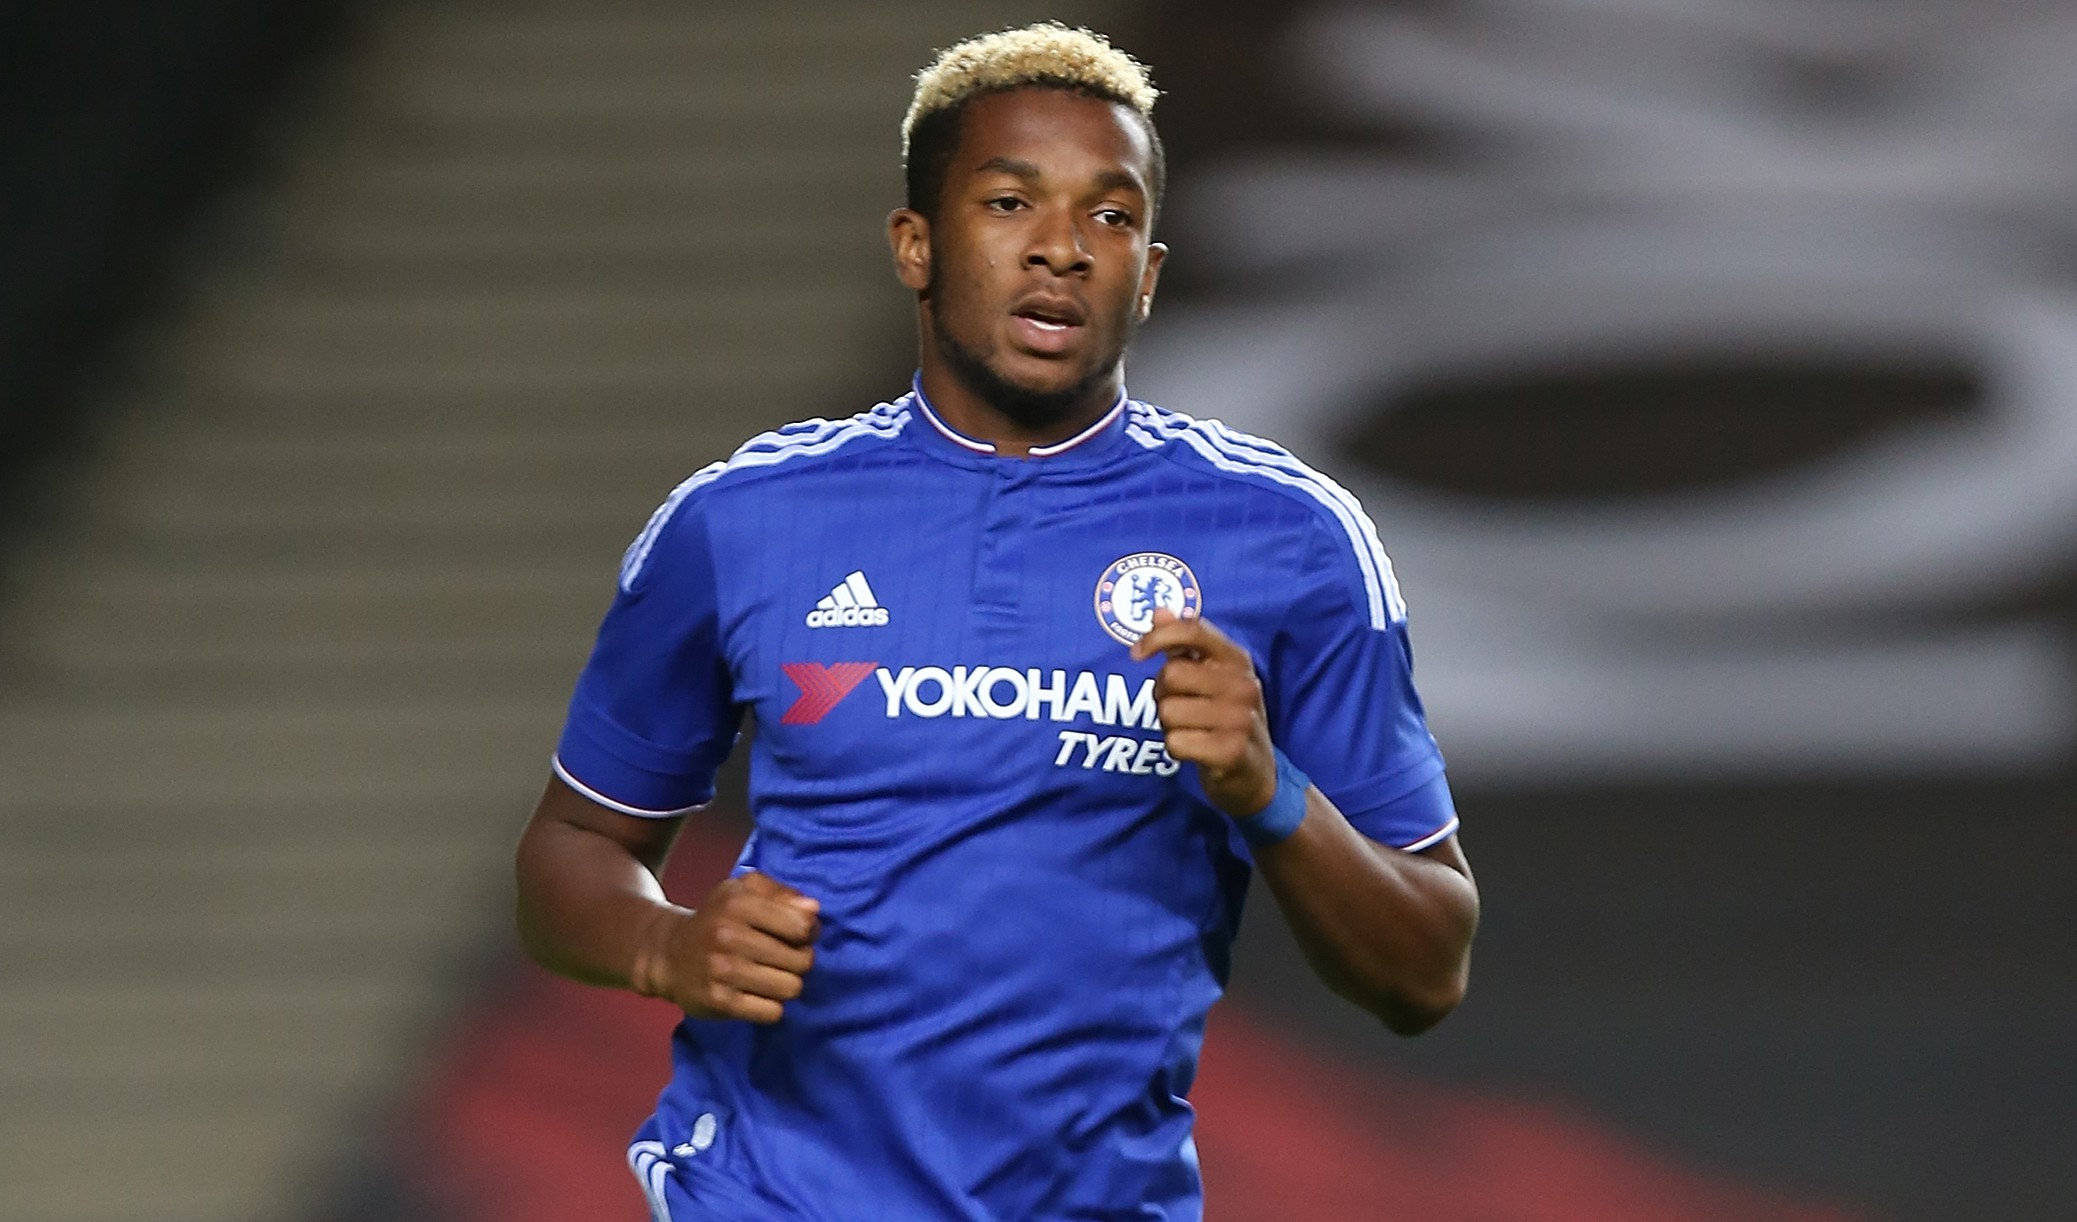 MILTON KEYNES, ENGLAND - AUGUST 03: Kasey Palmer of Chelsea in action during the Pre-Season Friendly match between MK Dons and Chelsea XI at Stadium mk on August 3, 2015 in Milton Keynes, England. (Photo by Pete Norton/Getty Images)